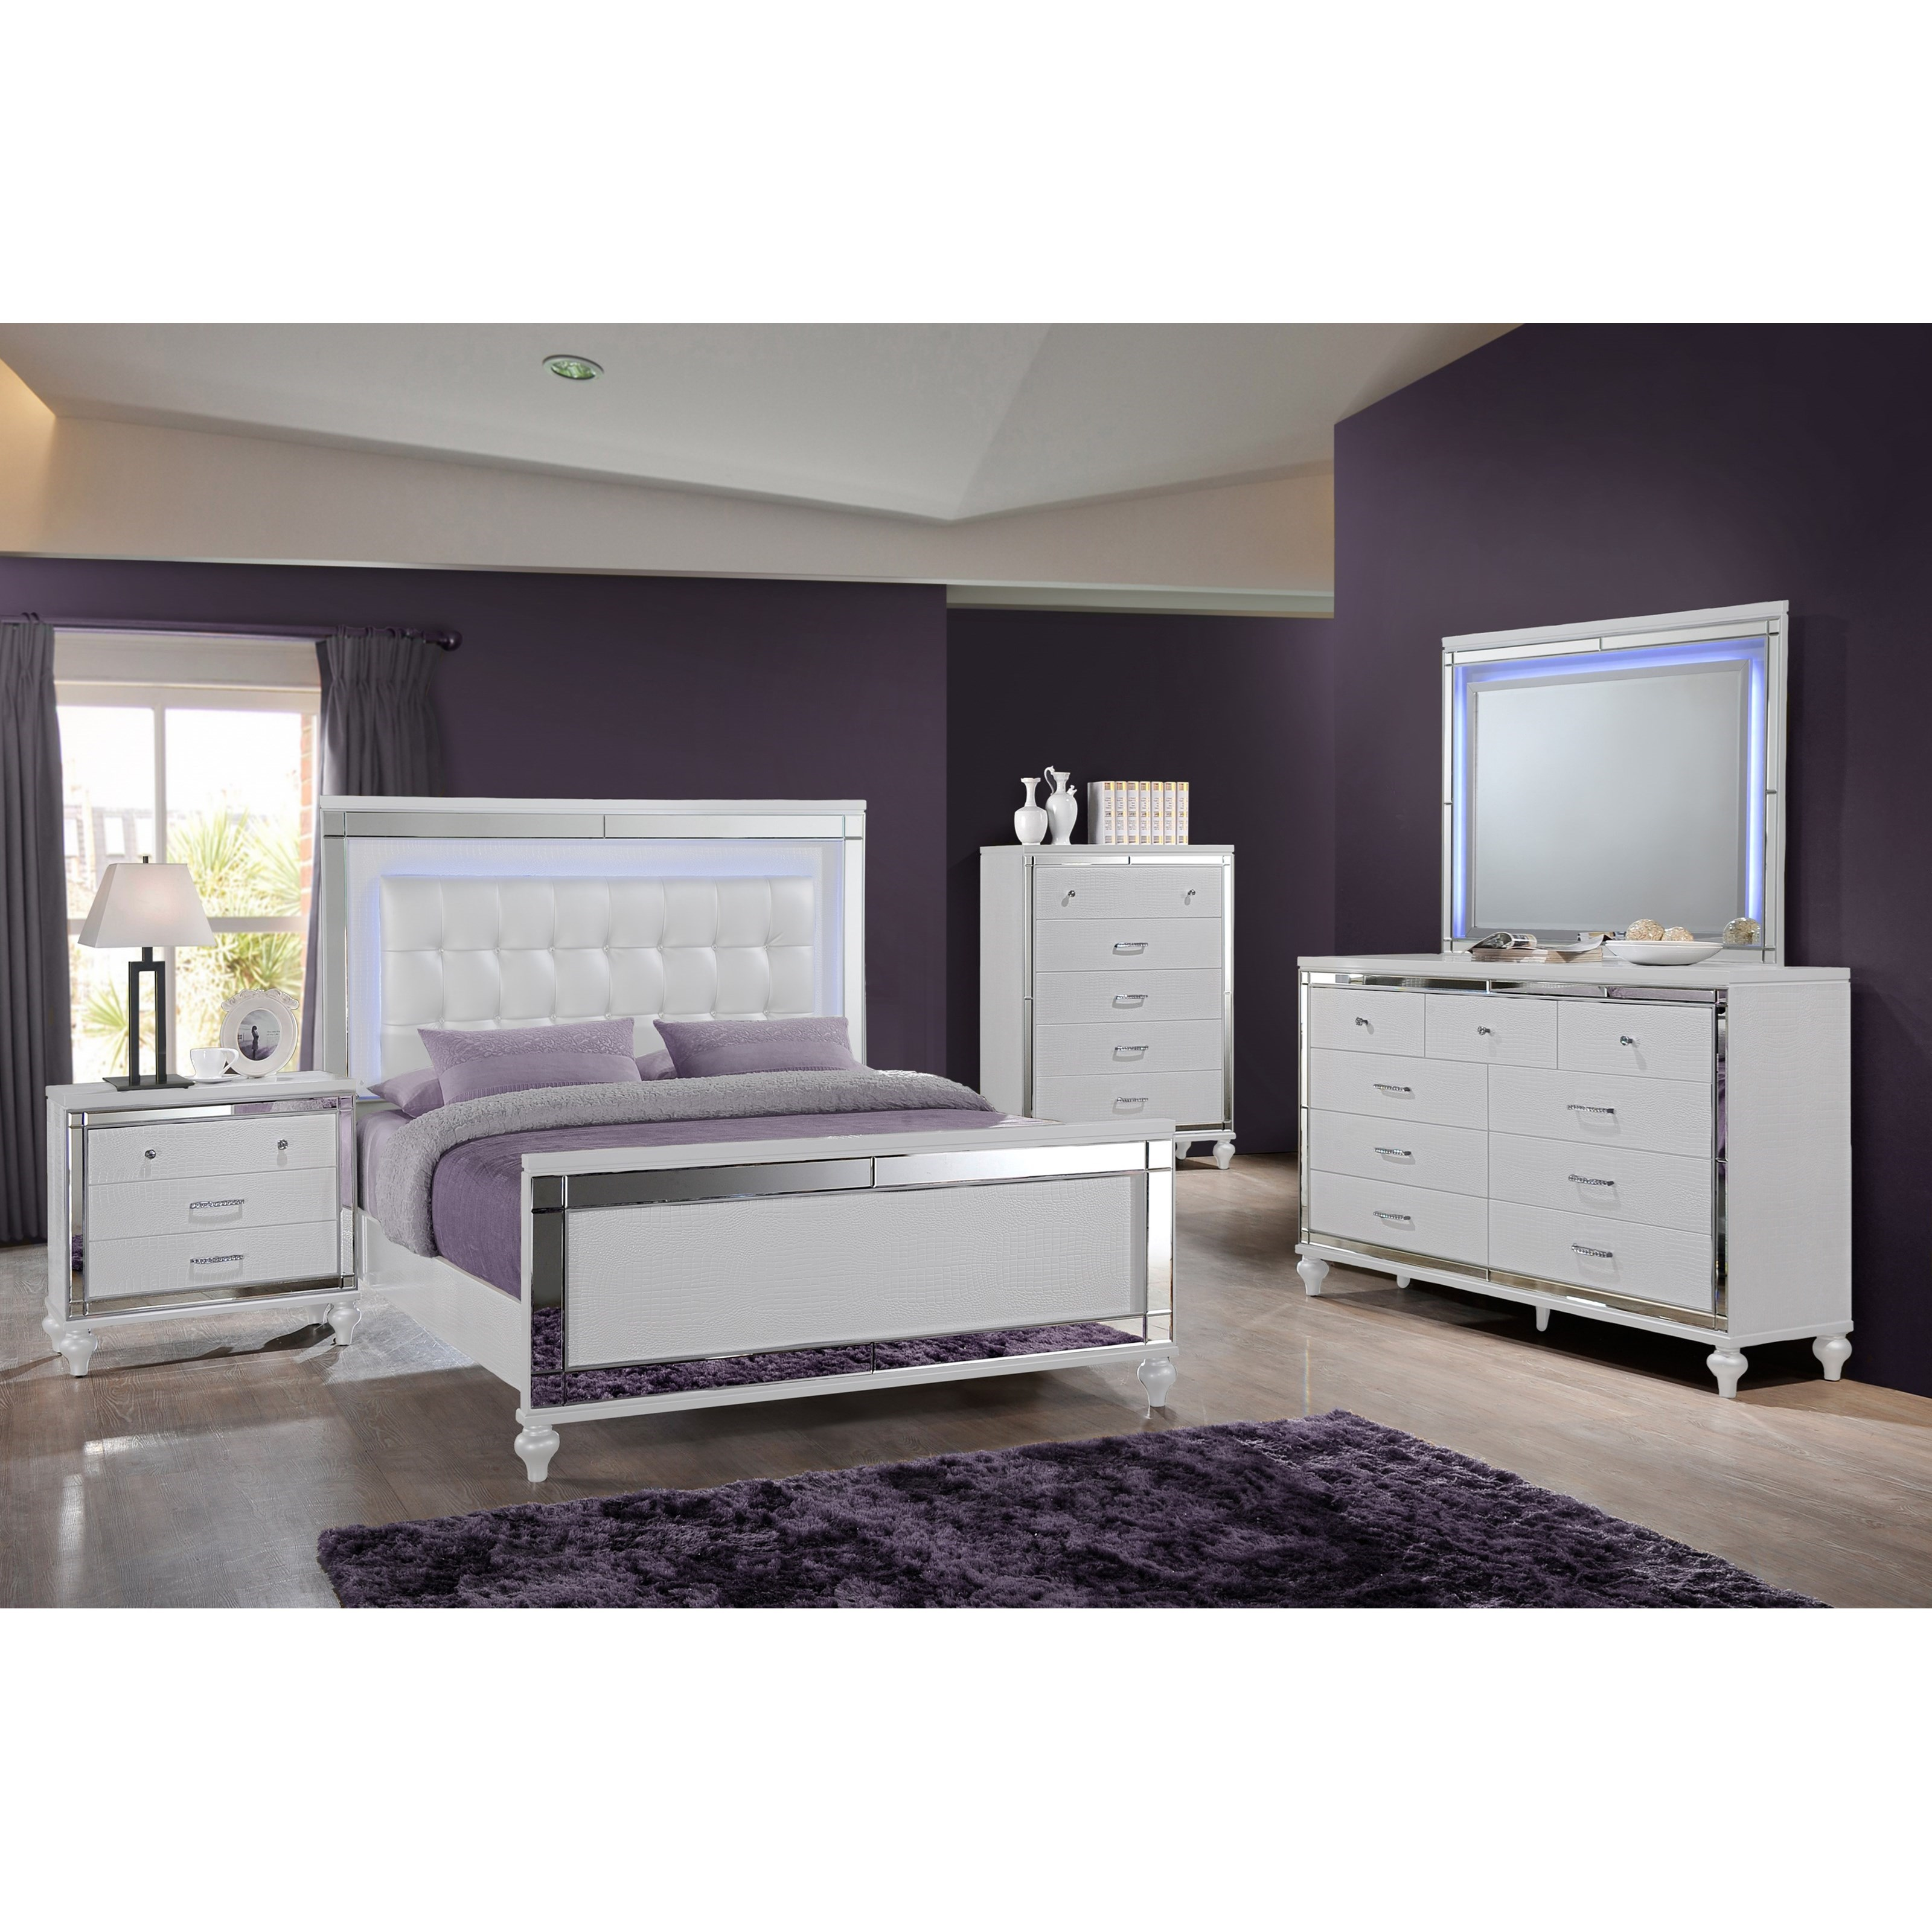 Valentino King Bedroom Group by New Classic at Beds N Stuff